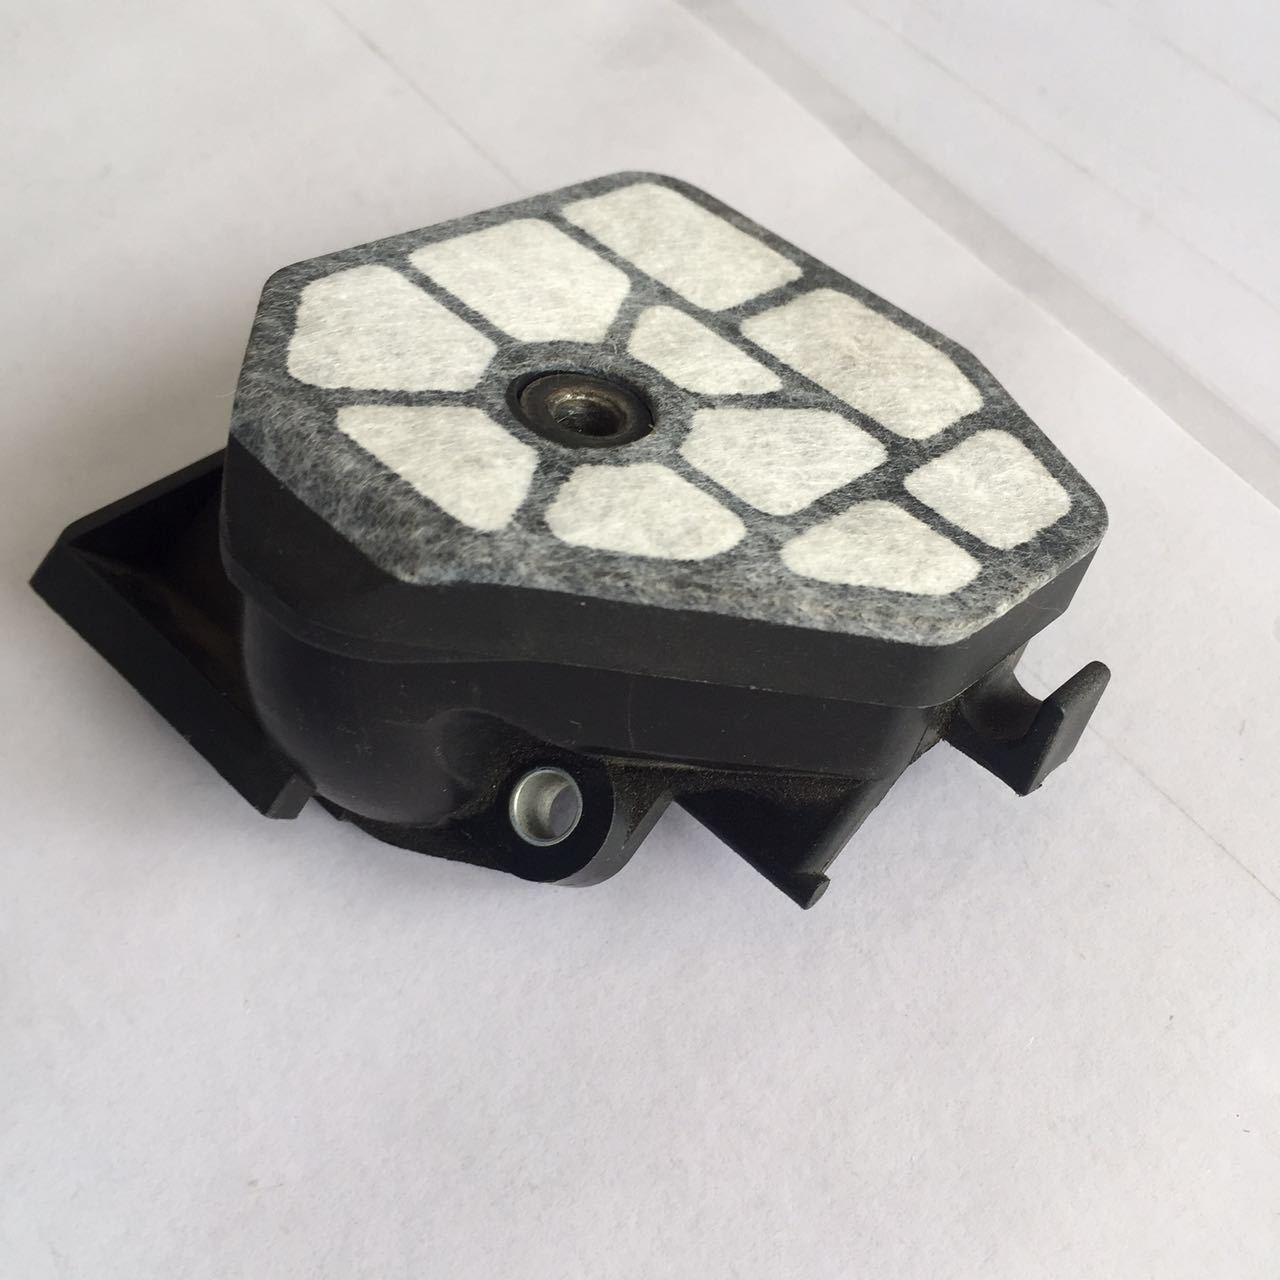 Cleaning Air Filter Assembly For PARTNER Chainsaw P350S Removes Small Particles High Quality Sturdy And Durable